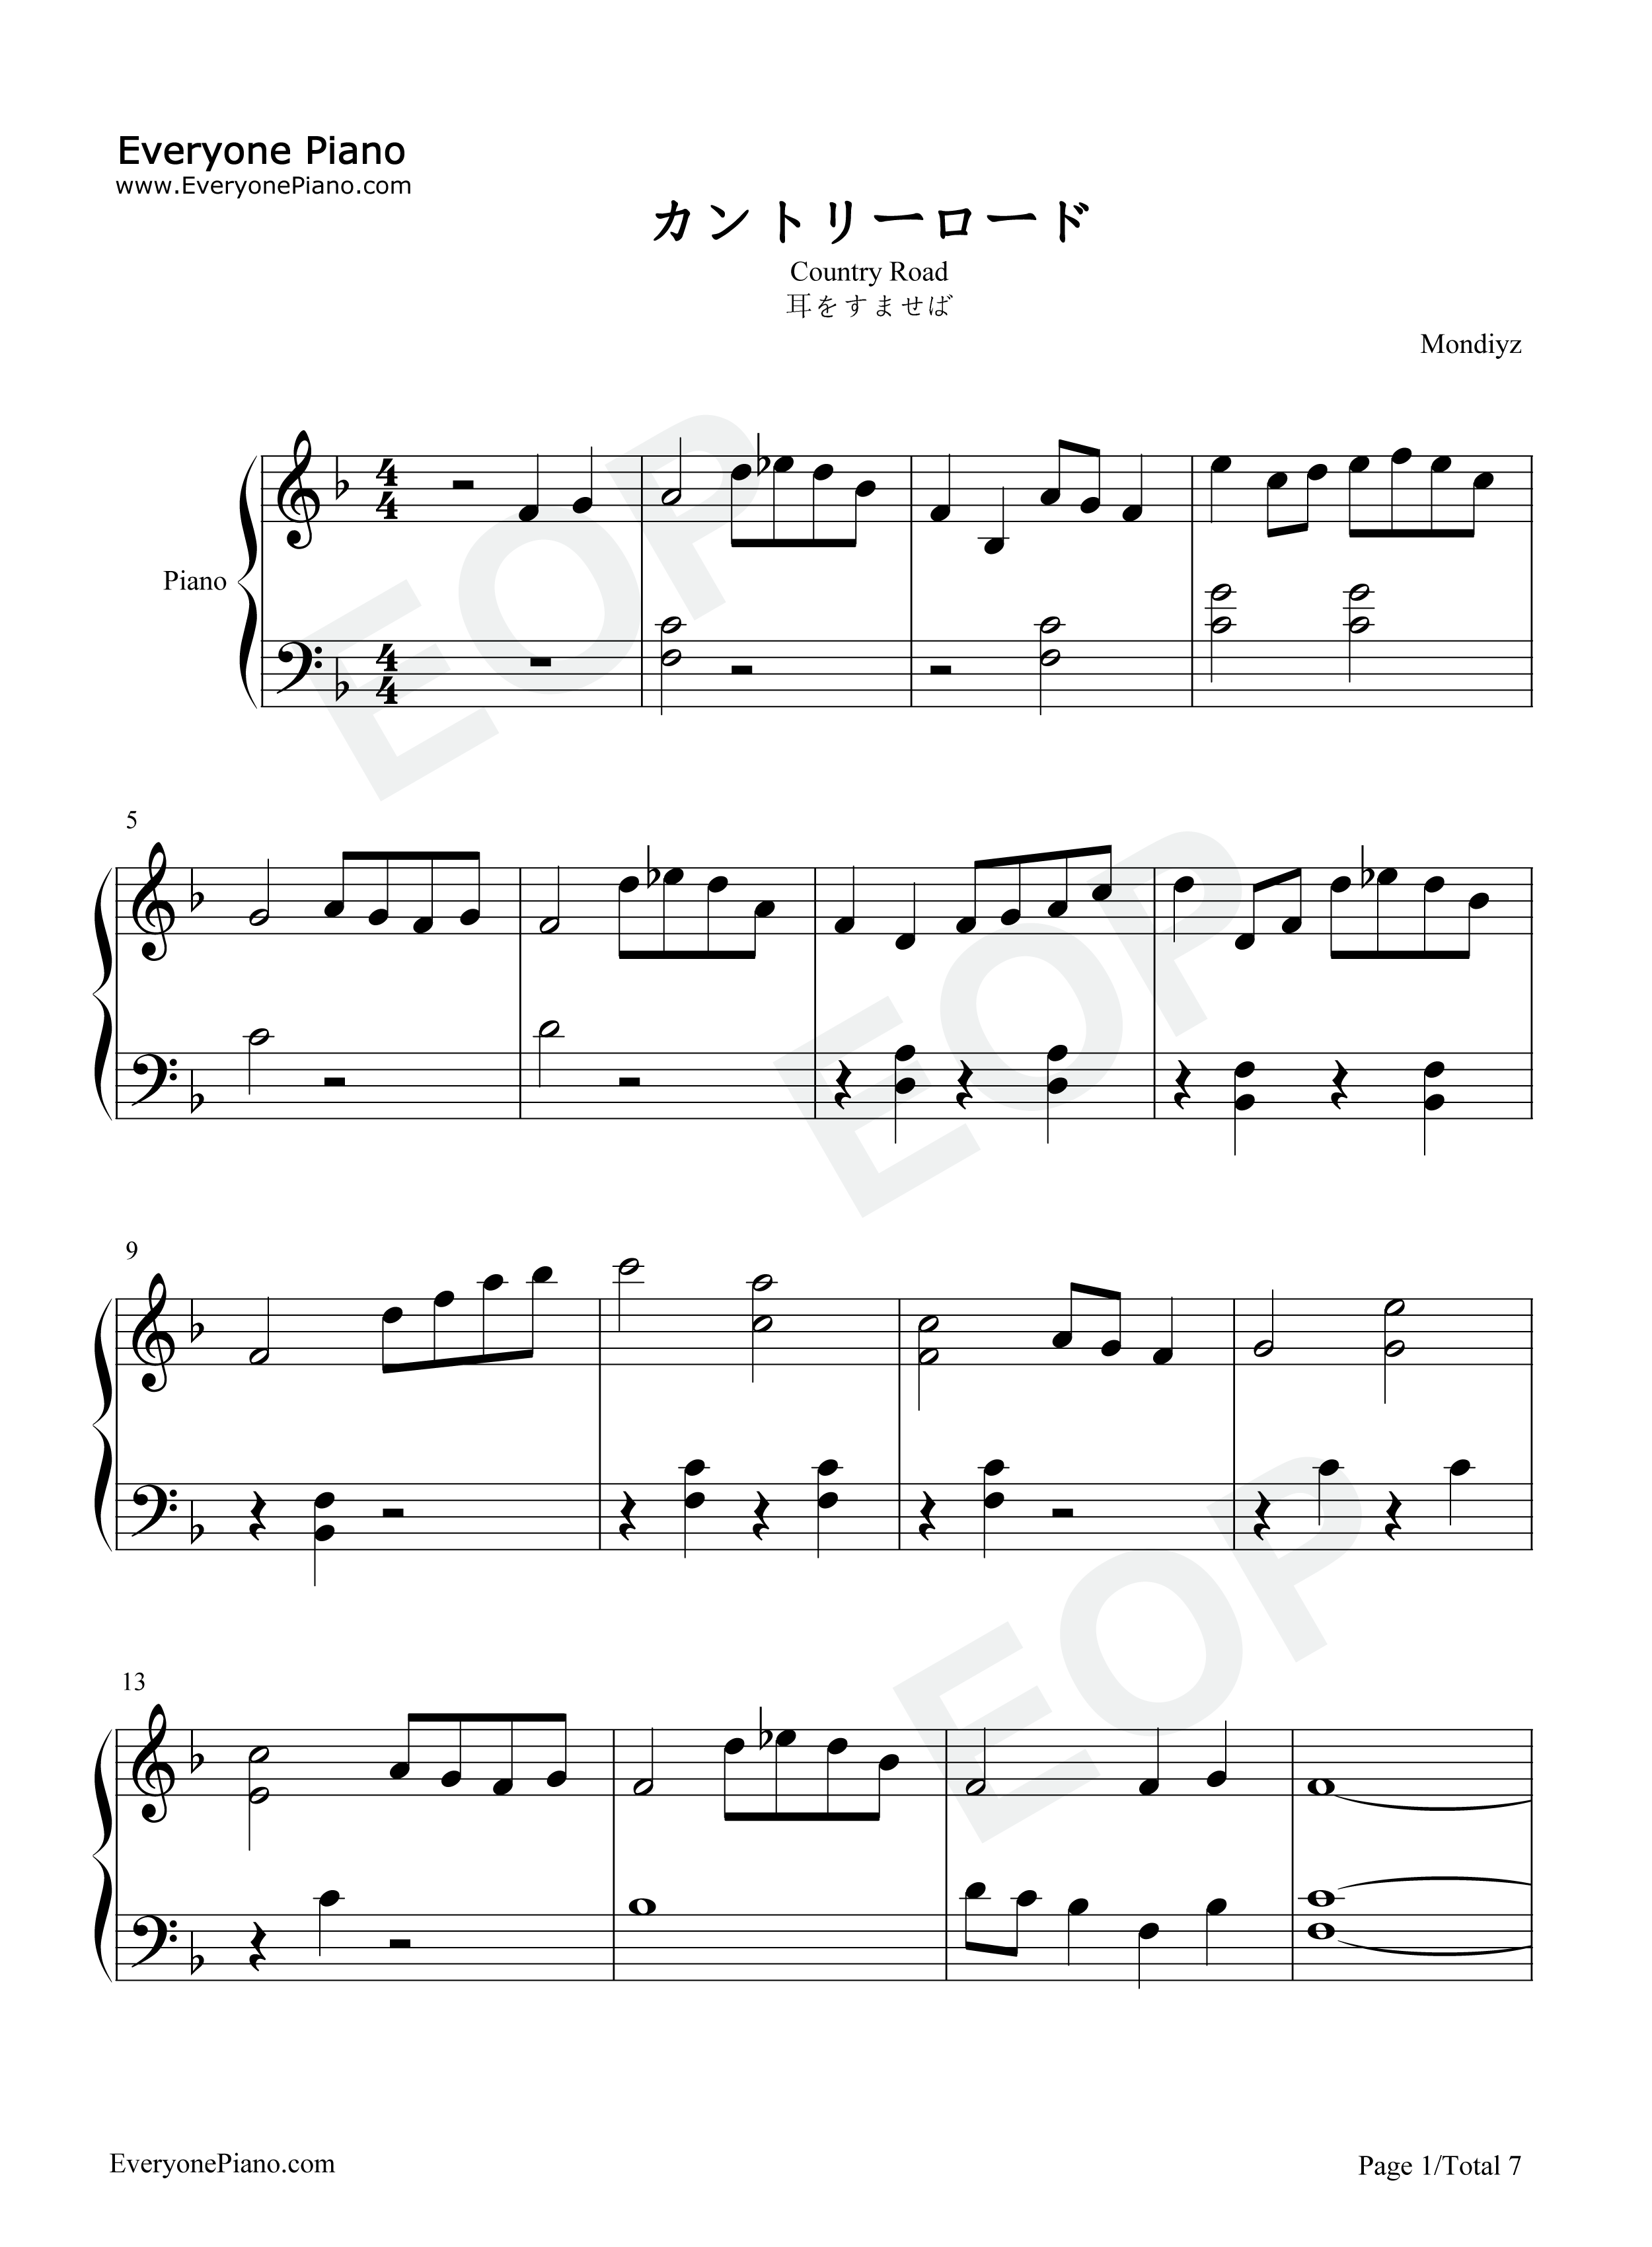 Country Road Take Me Home Country Roads Free Piano Sheet Music